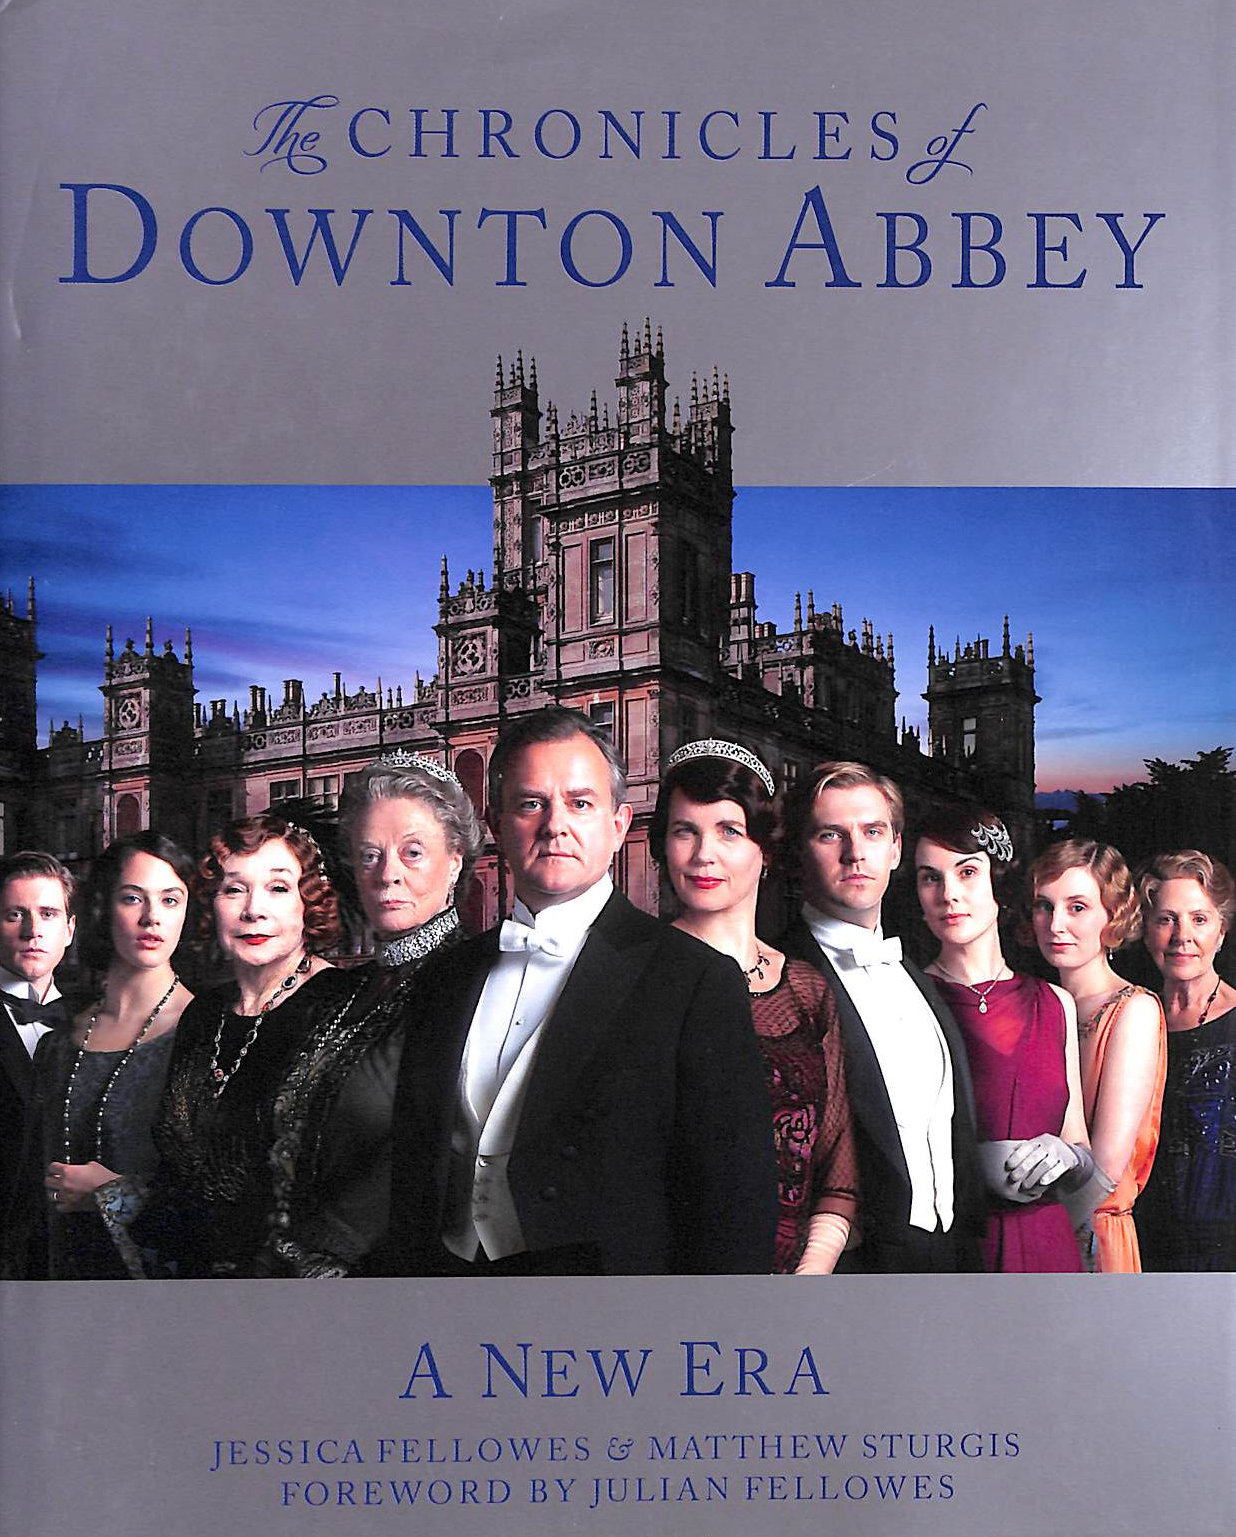 Image for The Chronicles of Downton Abbey: A New Era